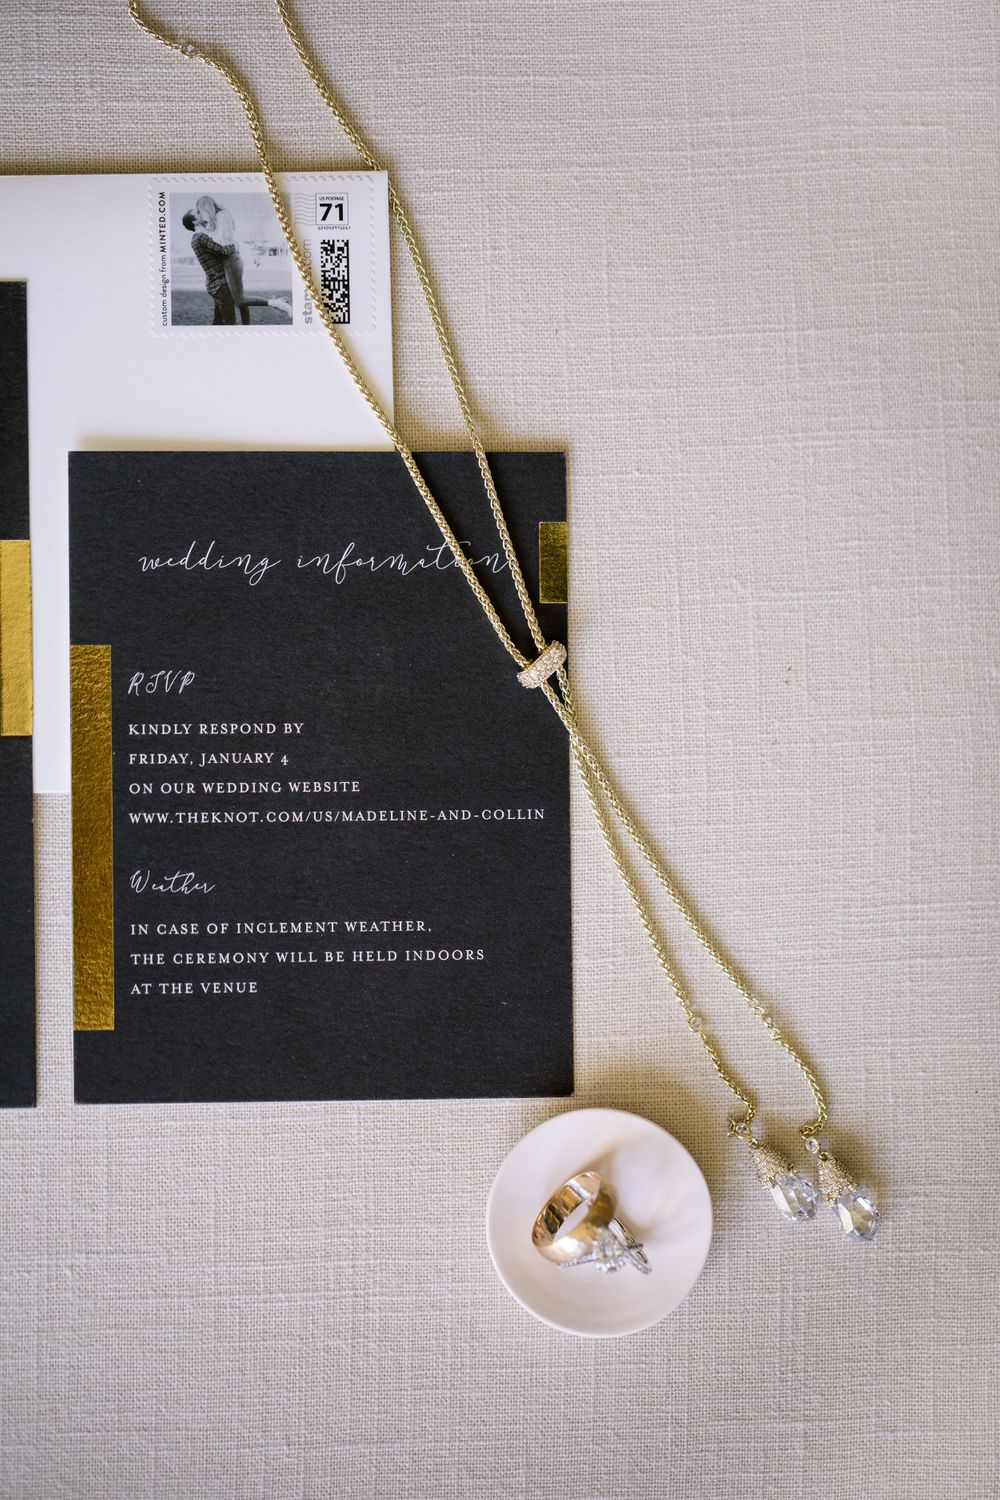 Modern black and gold wedding invitations.